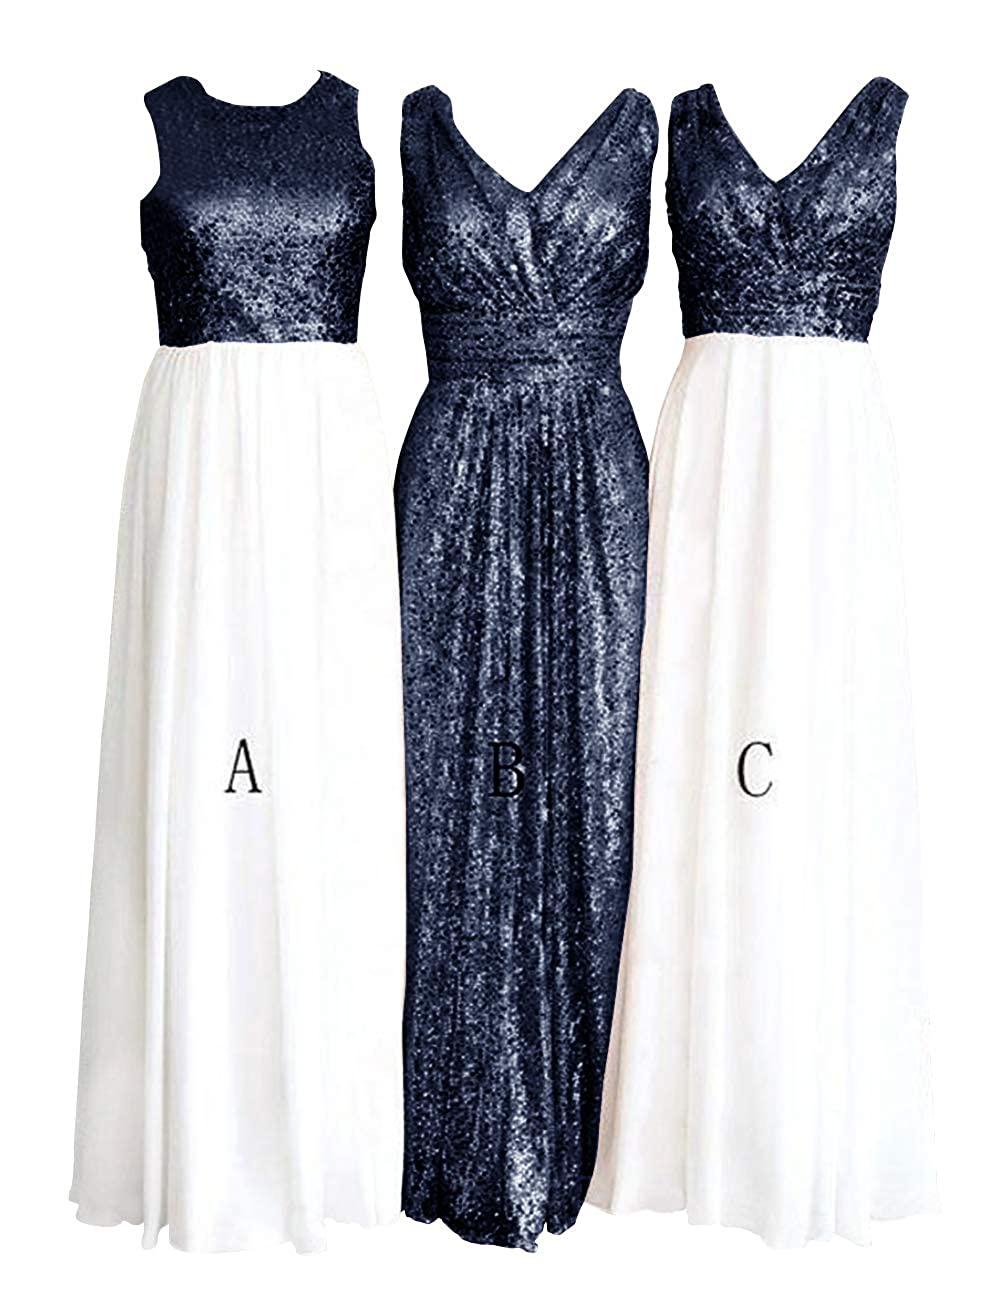 Awhite and Navy bluee H.S.D Women's pink gold Sequins Paillettes Long Bridesmaid Party Prom Dress